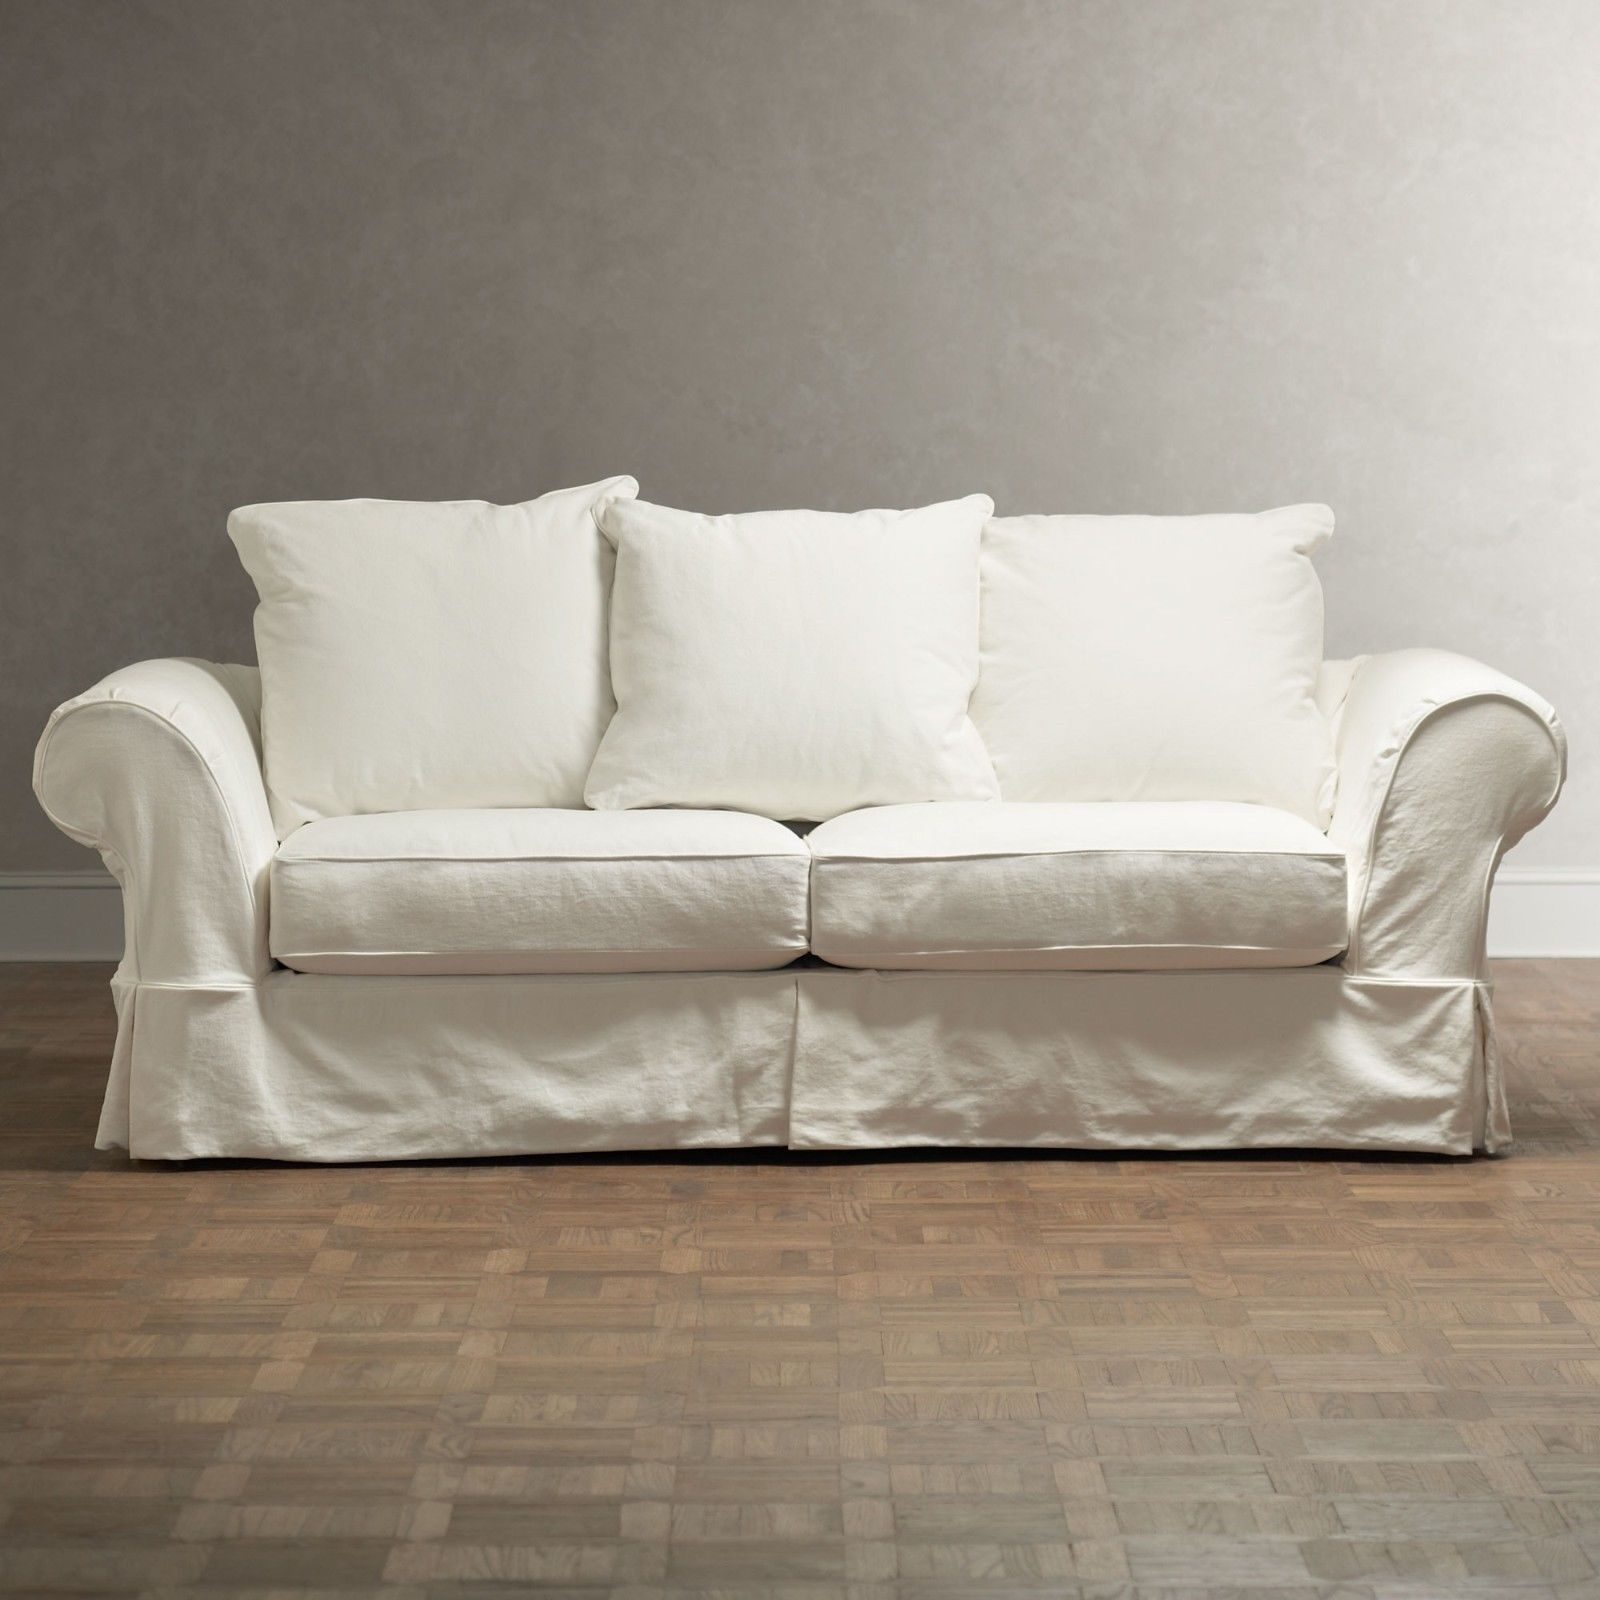 Best Of Slipcover Sofa Pottery Barn Online Portrait